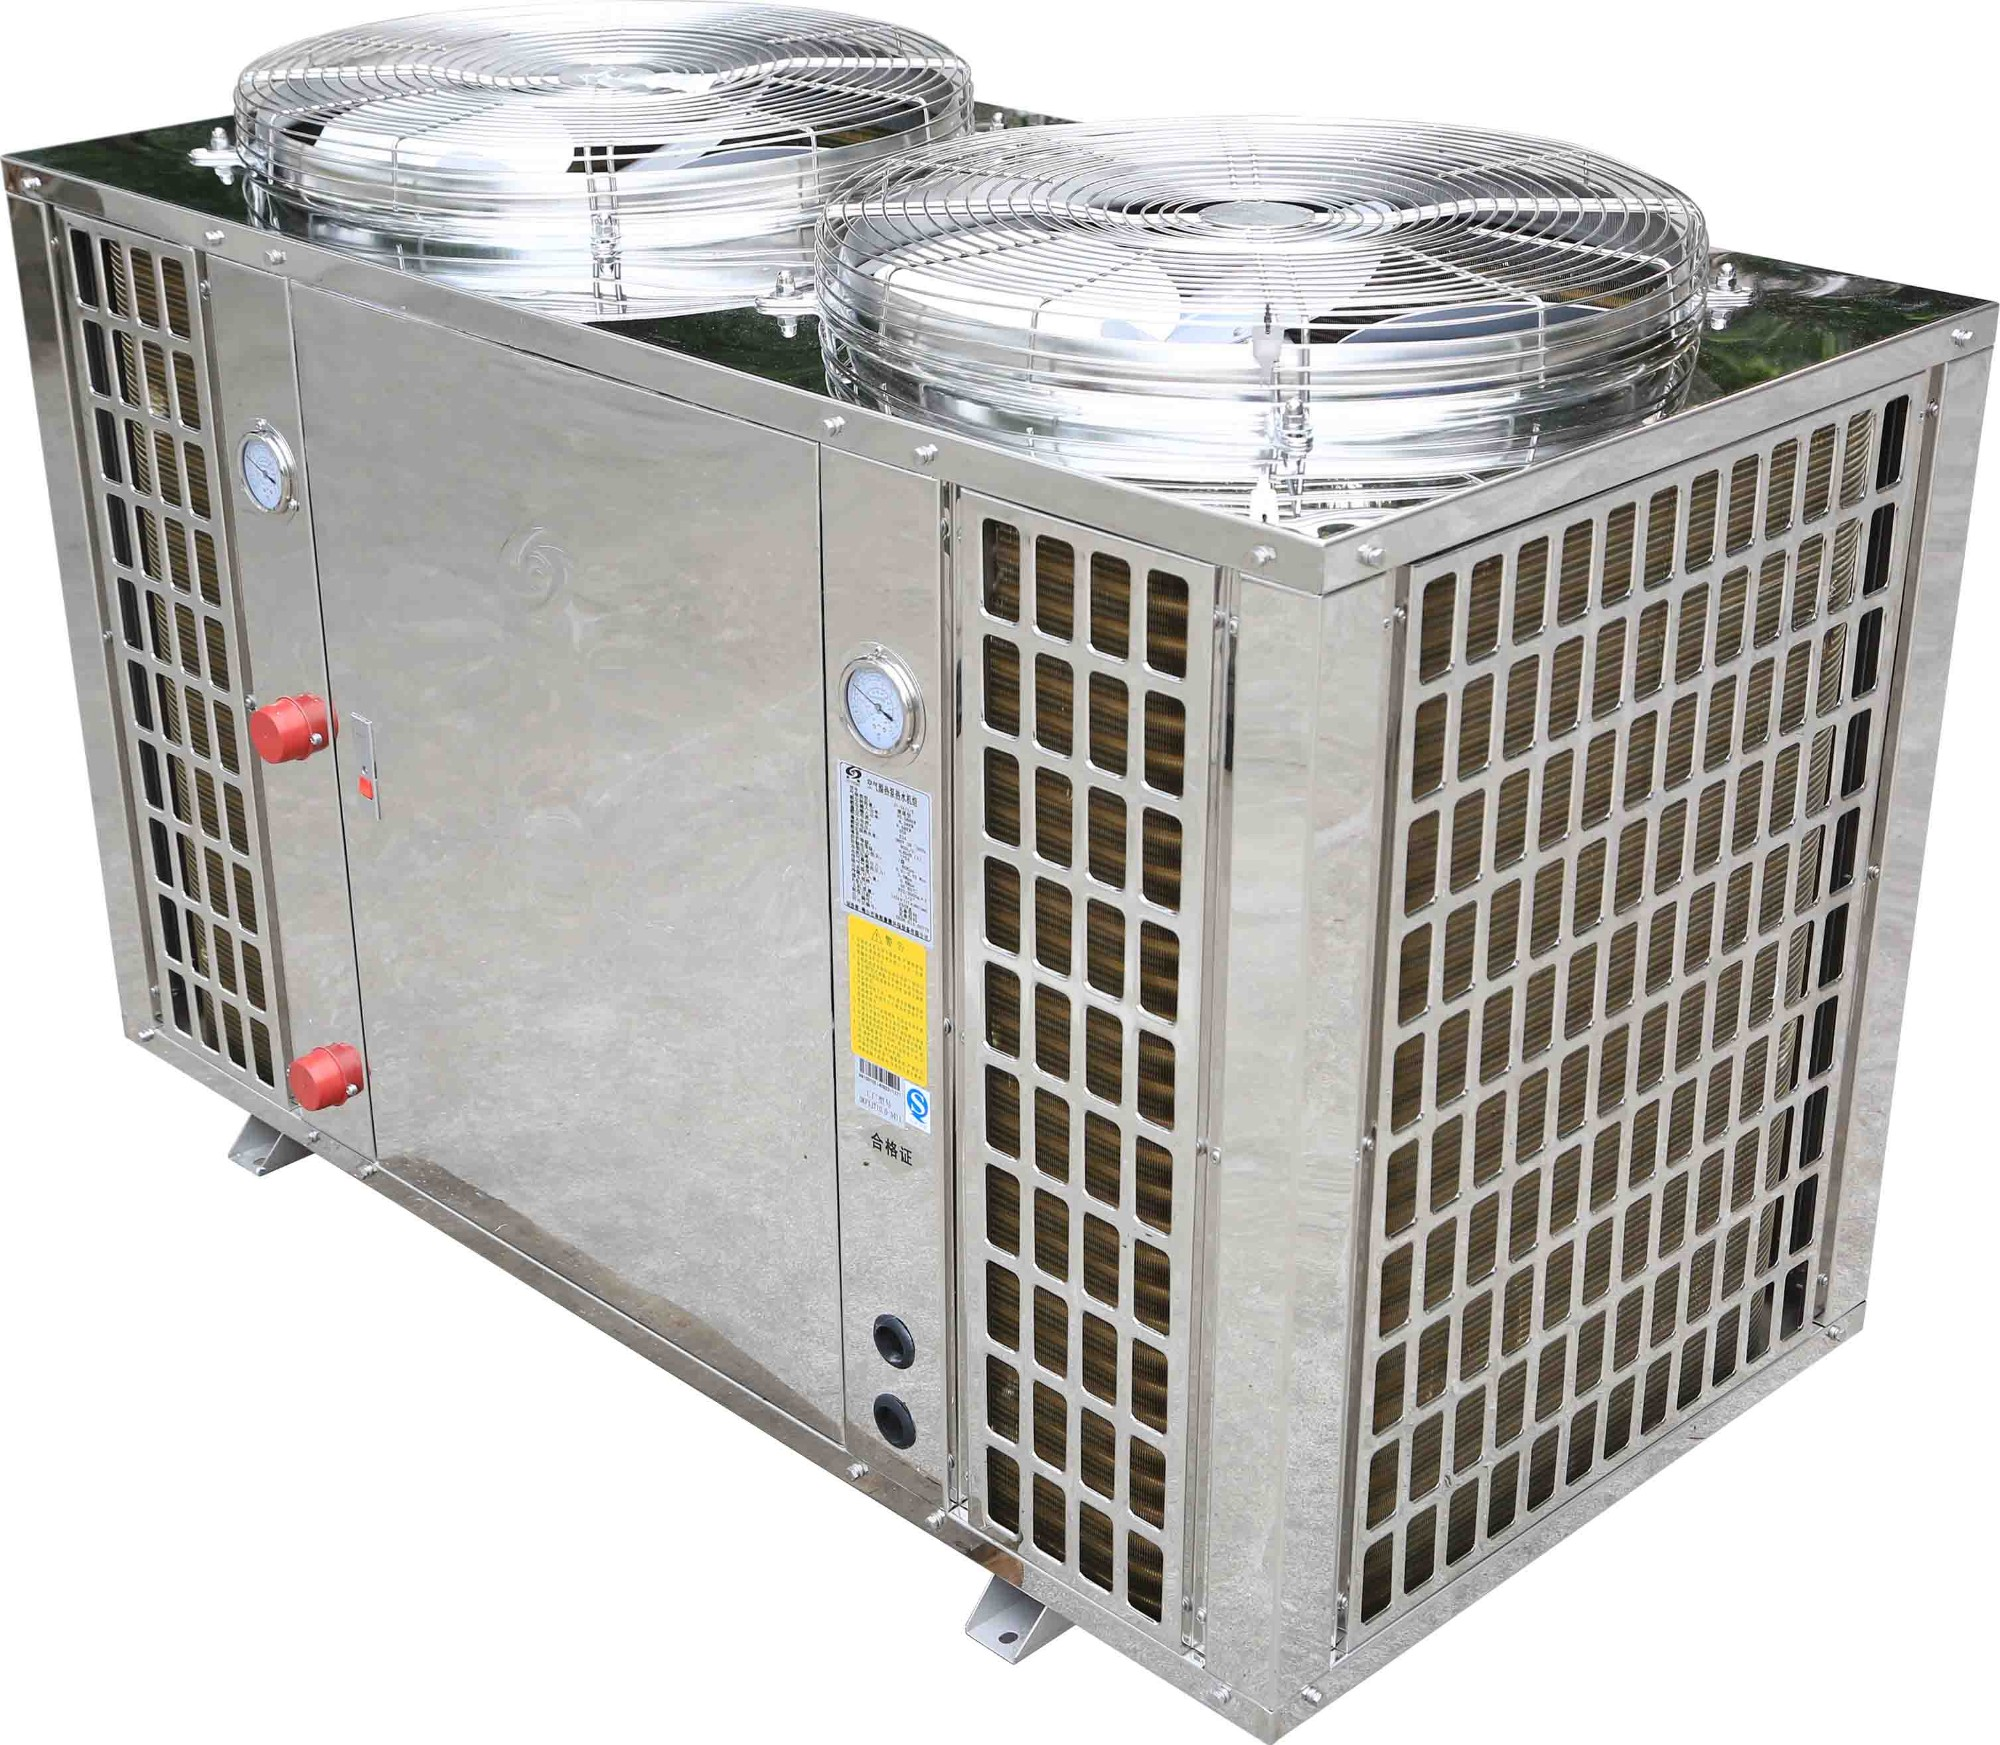 High quality energy saving techology  Commercial And Residential Heating And Cooling Quotes,China heat pump equipment Commercial And Residential Heating And Cooling Factory, pump equipmentCommercial And Residential Heating And Cooling Purchasing